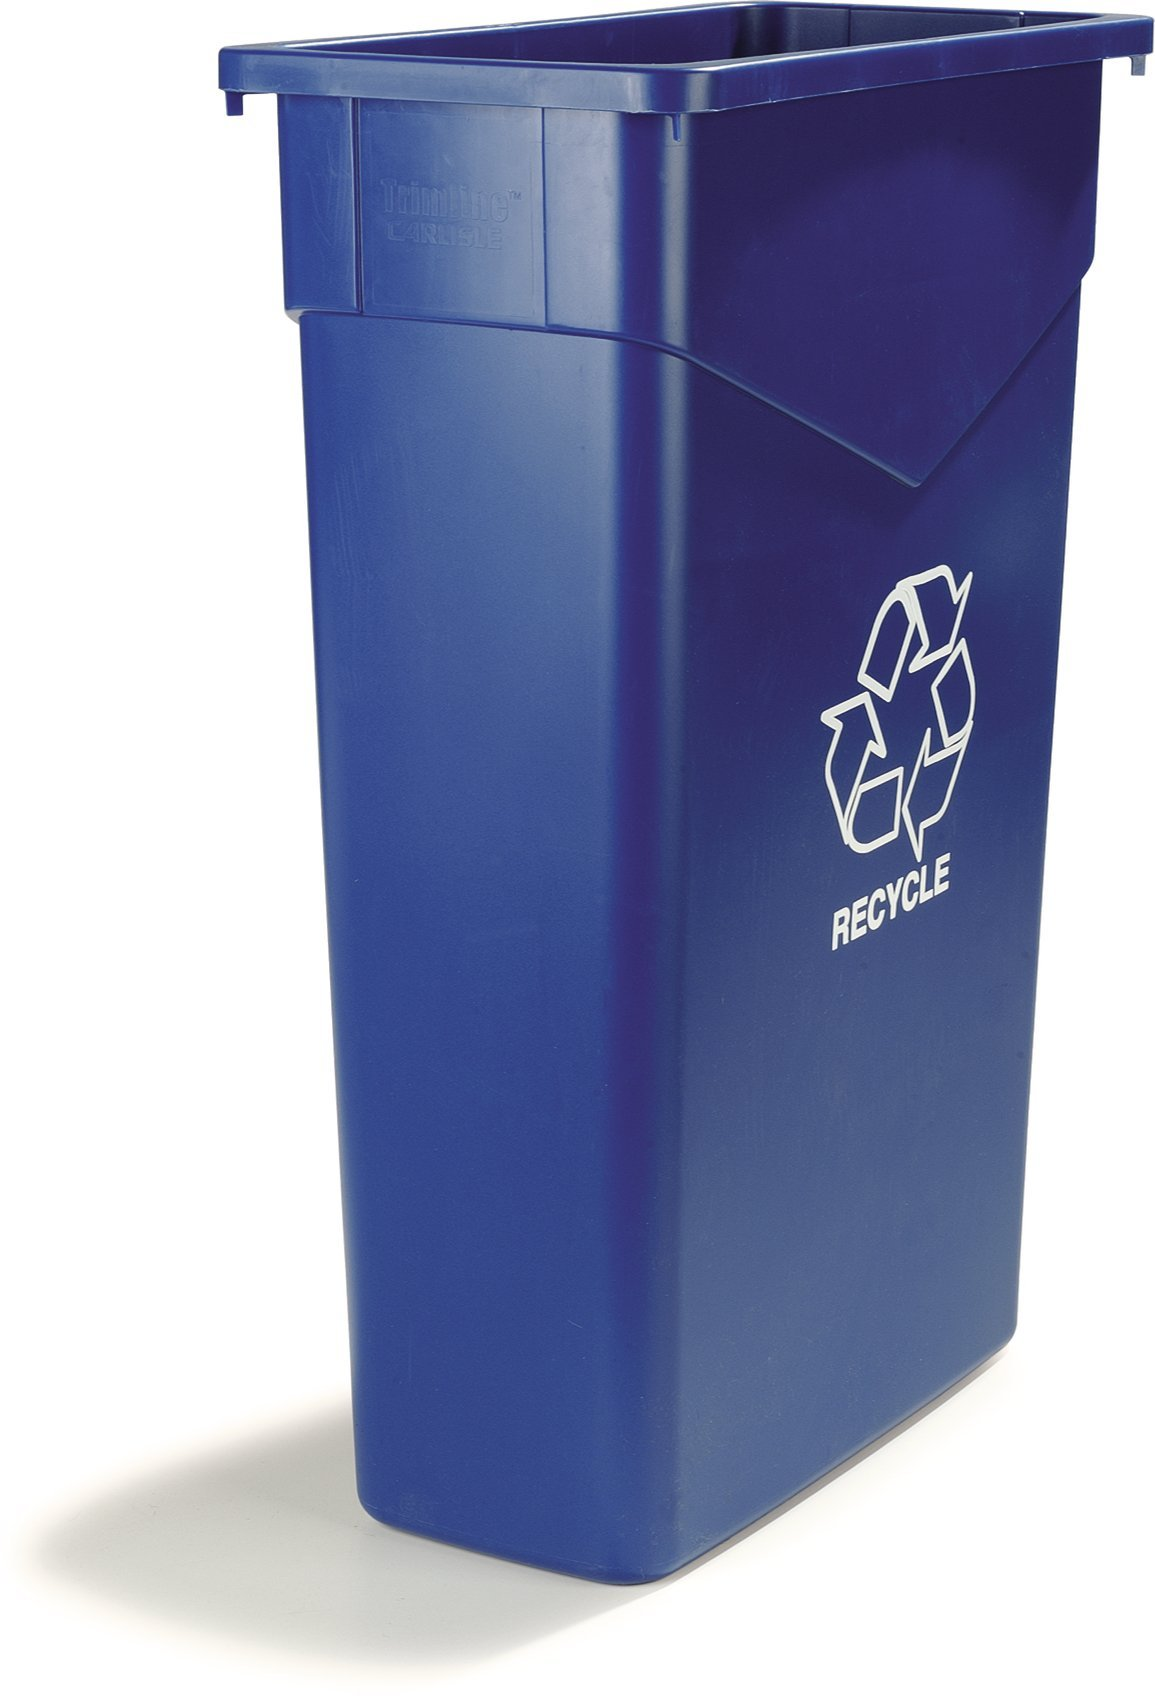 Carlisle 342023REC14 TrimLine LLDPE Recycle Can, 23 Gallon Capacity, 20'' Length x 11'' Width x 29.88'' Height, Blue by Carlisle (Image #7)